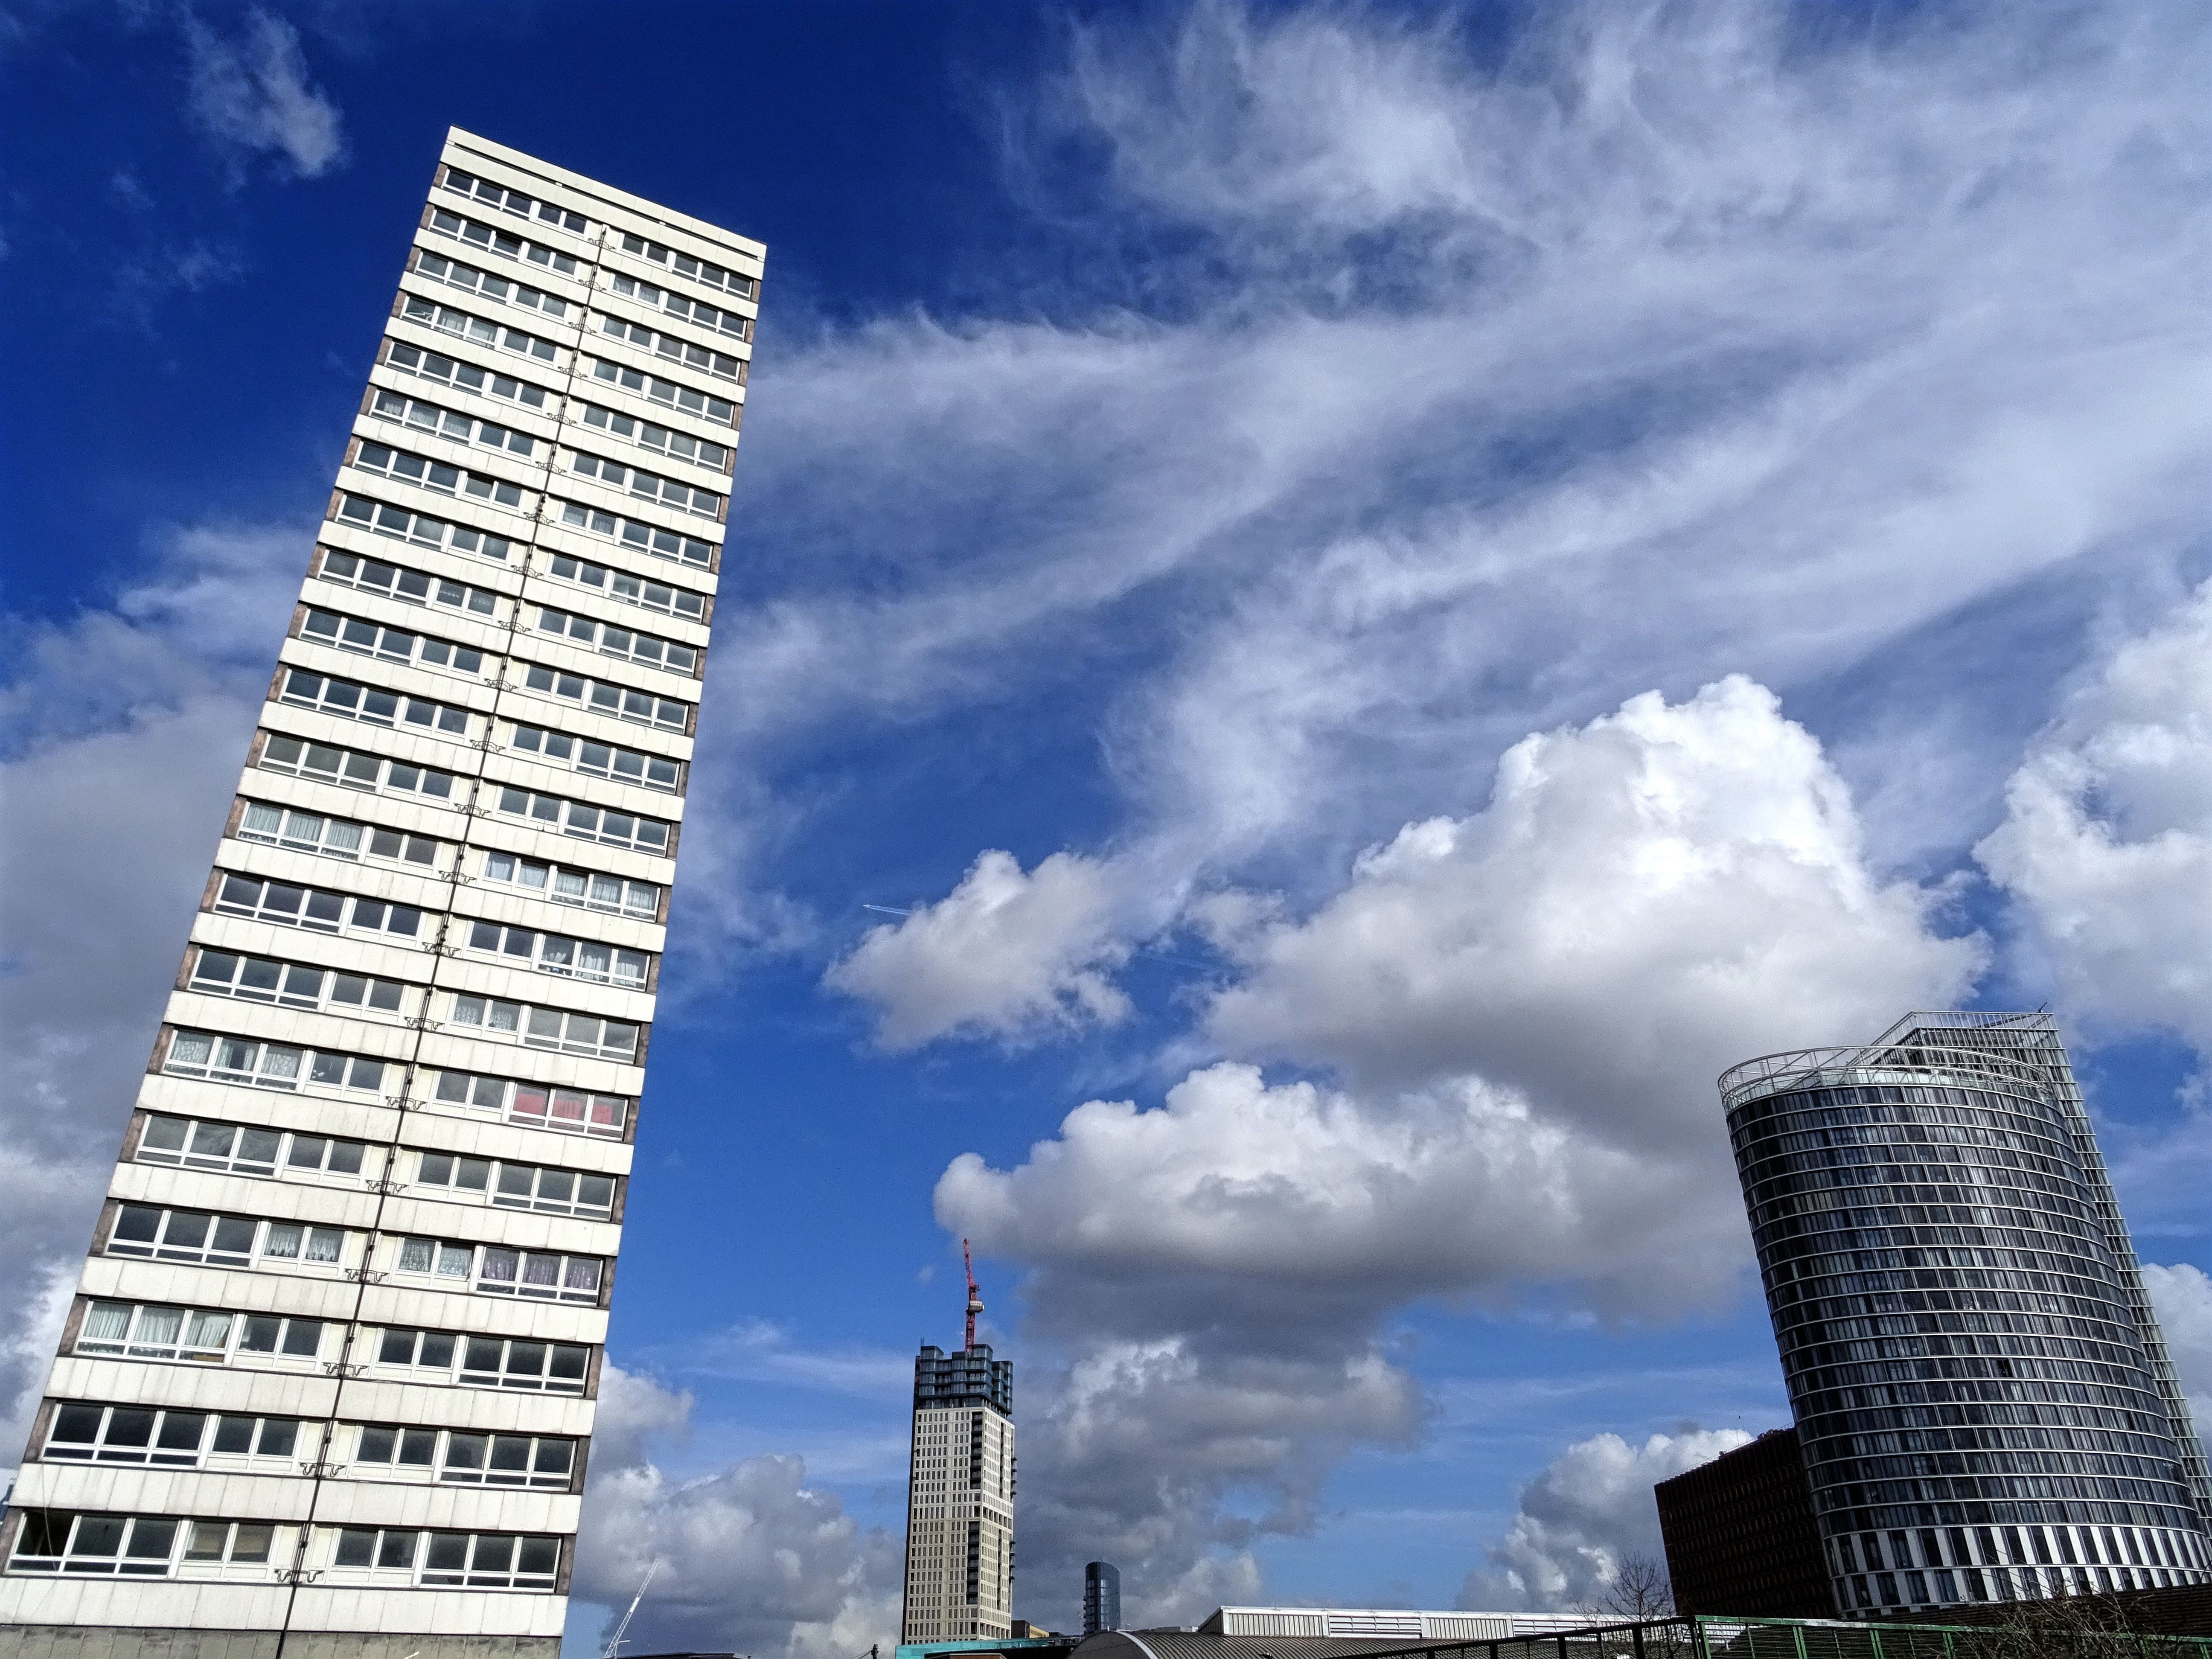 Photo of Two White and Black High Rise Buildings, Perspective, Travel, Tower, Tallest, HQ Photo